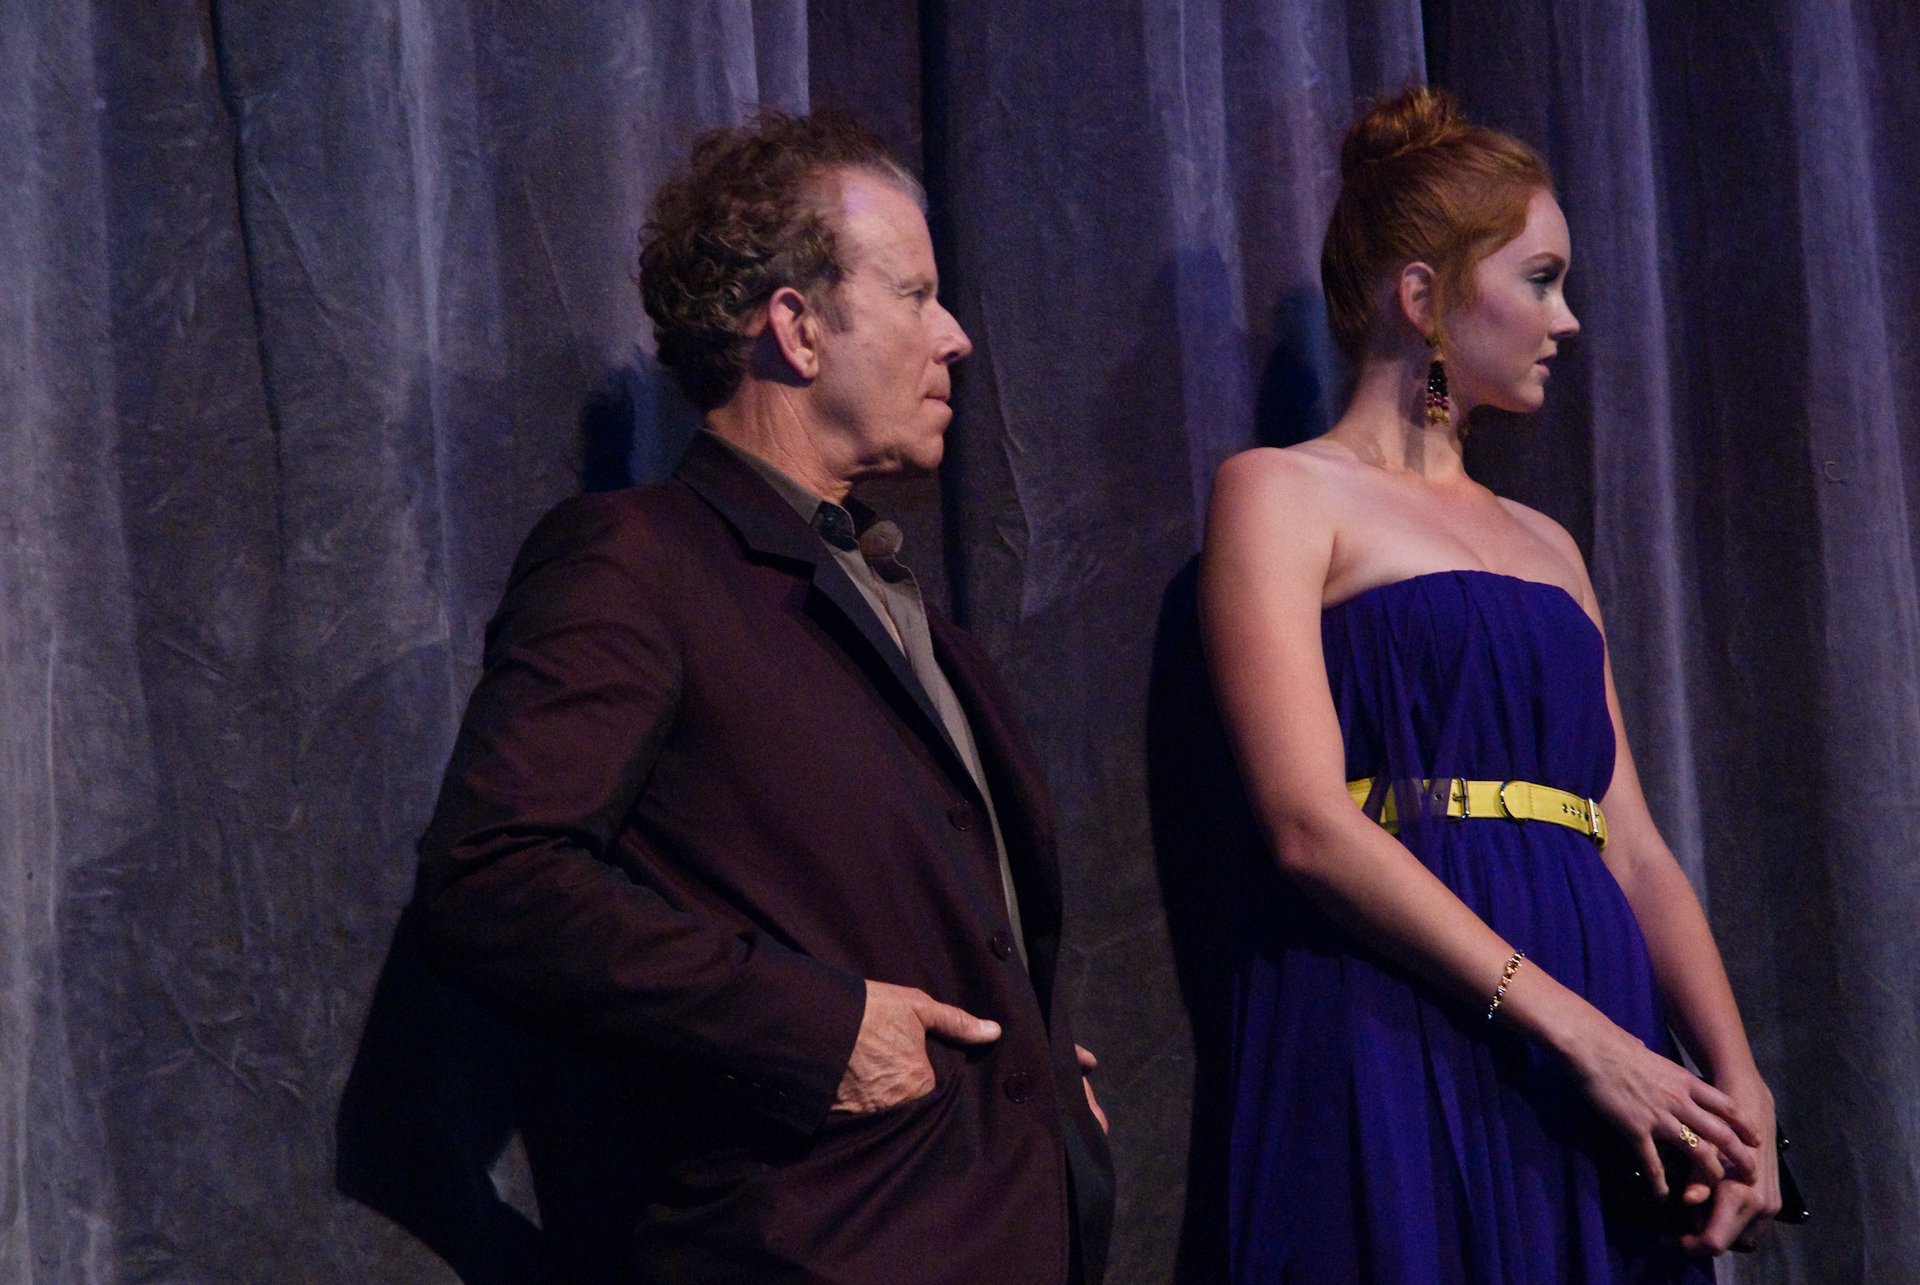 Tom Waits y Lily Cole en el estreno de la película The Imaginarium of Doctor Parnassus.